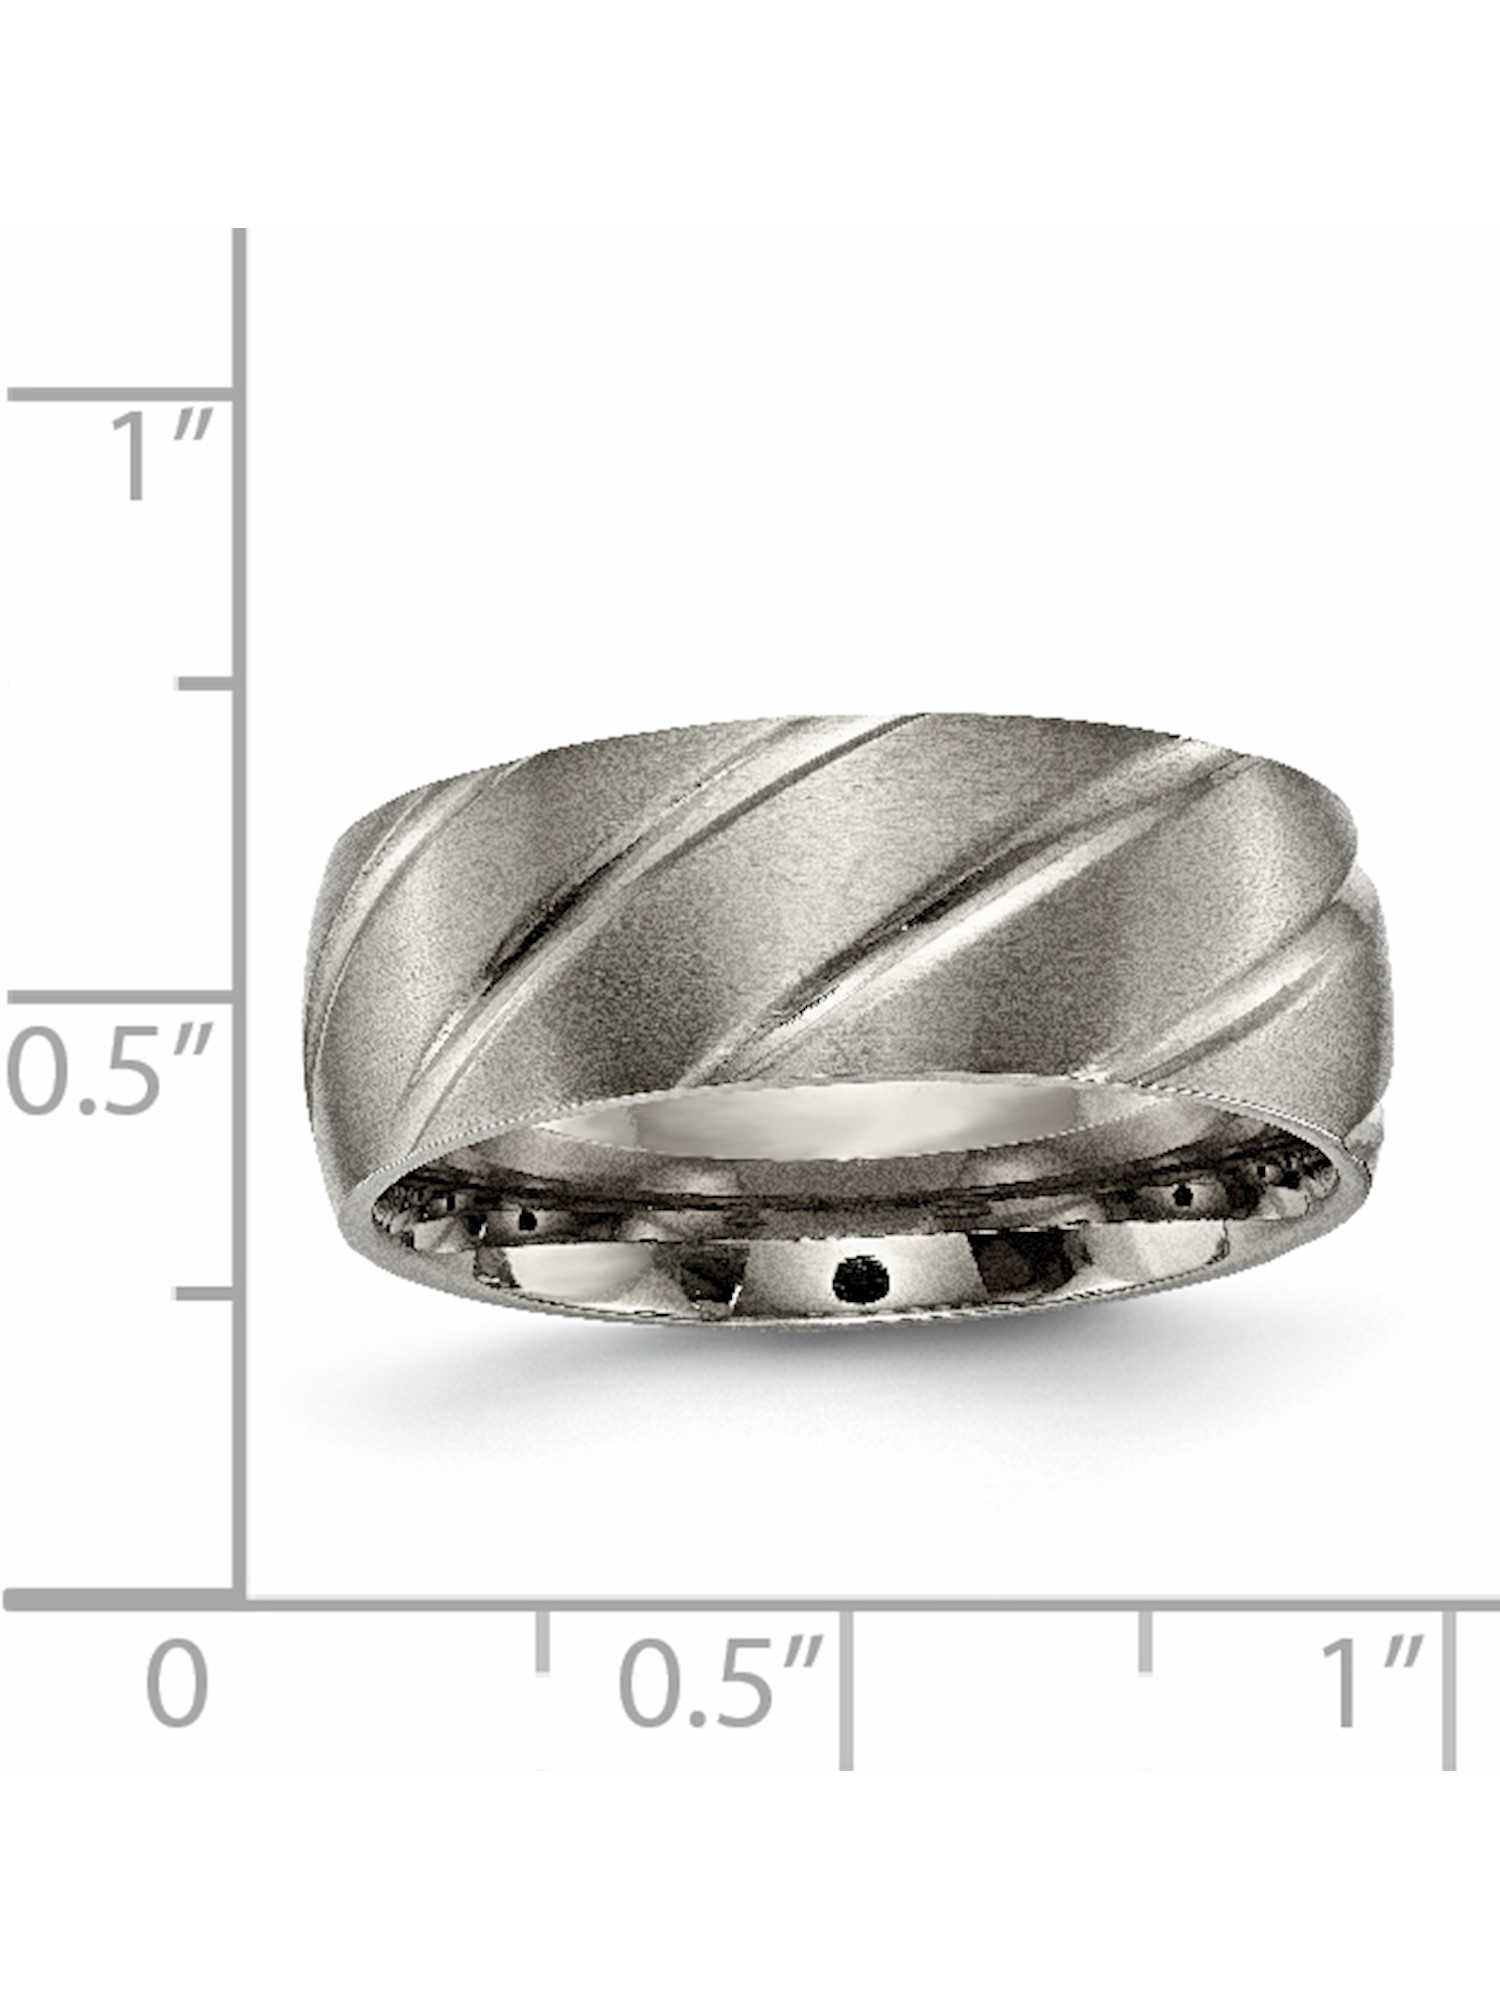 Titanium Grooved 8mm Satin Band Size 13 Length 0 Width 8